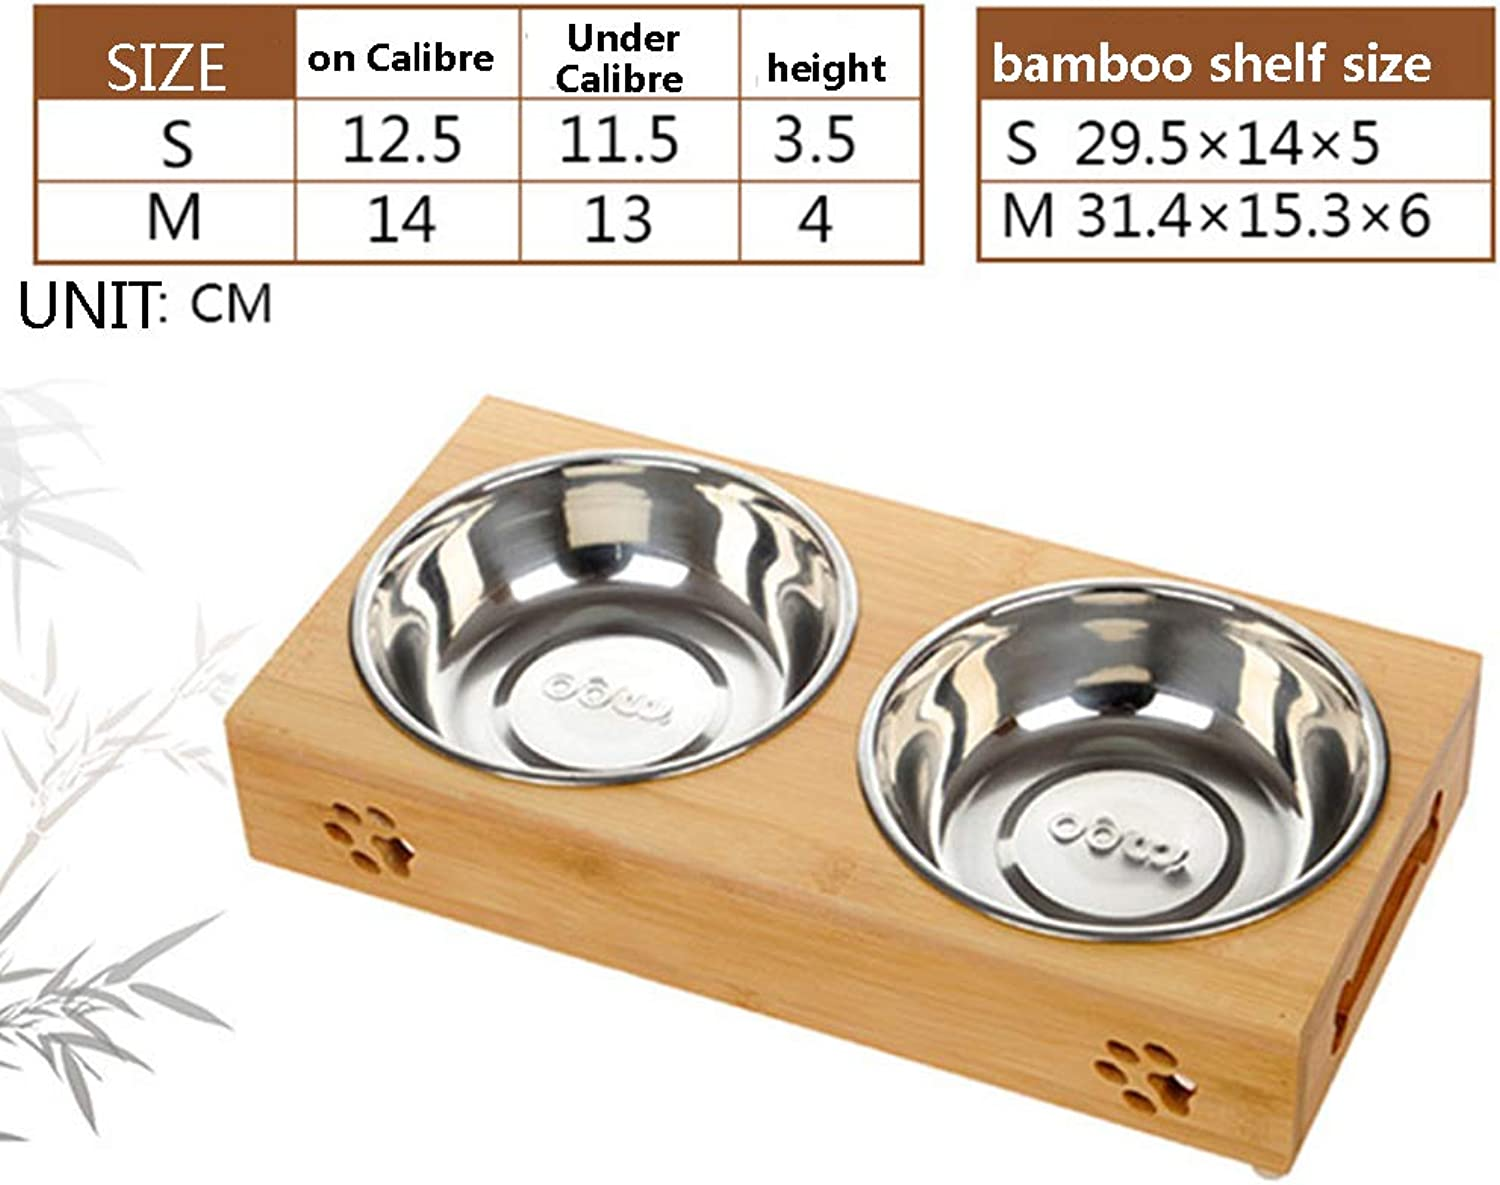 Dog Bowls Non Slip Stainless Steel Ceramic Raised Bamboo Stand Set of Double Bowls Best for Small Dogs and Cats